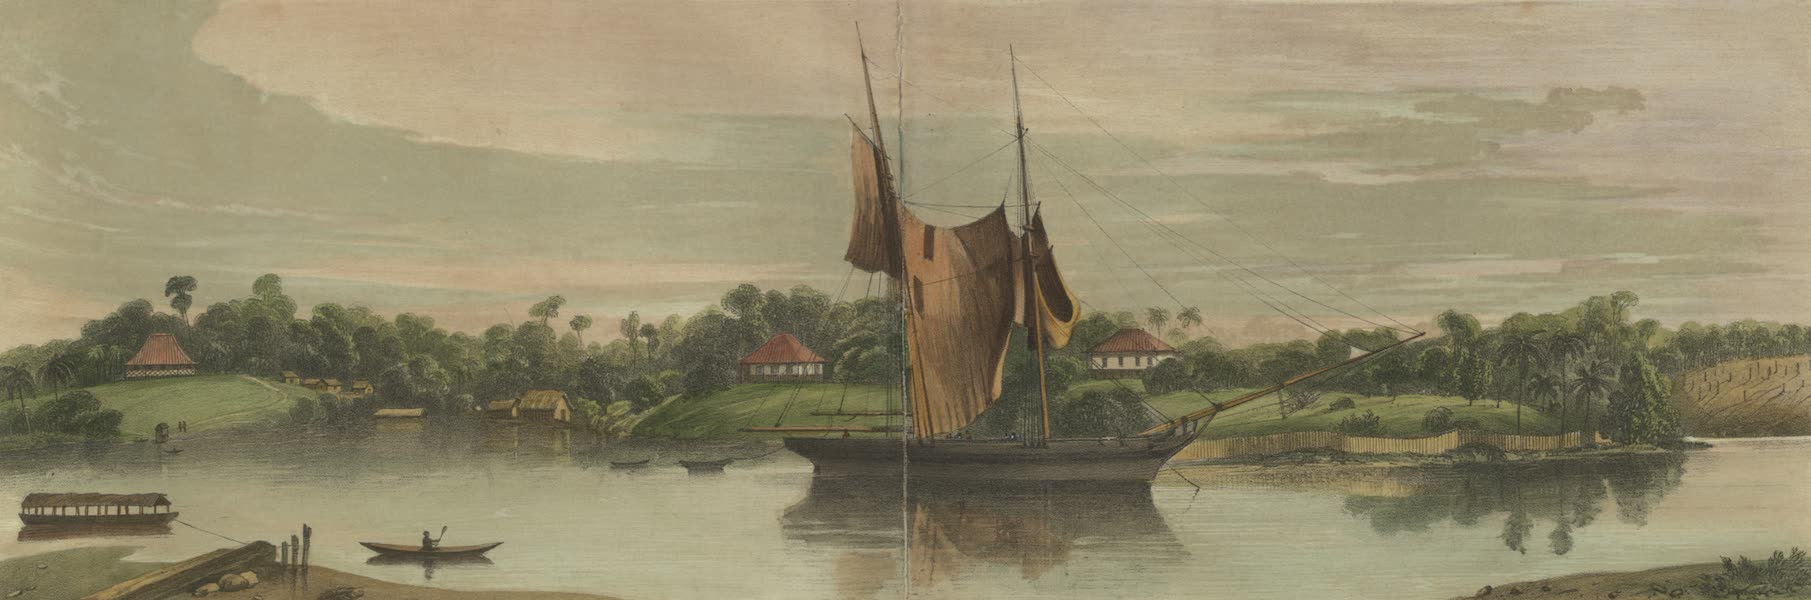 Views in the Eastern Archipelago - Kuching, Sawawak, Borneo. The settlement founded by James Brooke, Esqr. (1847)